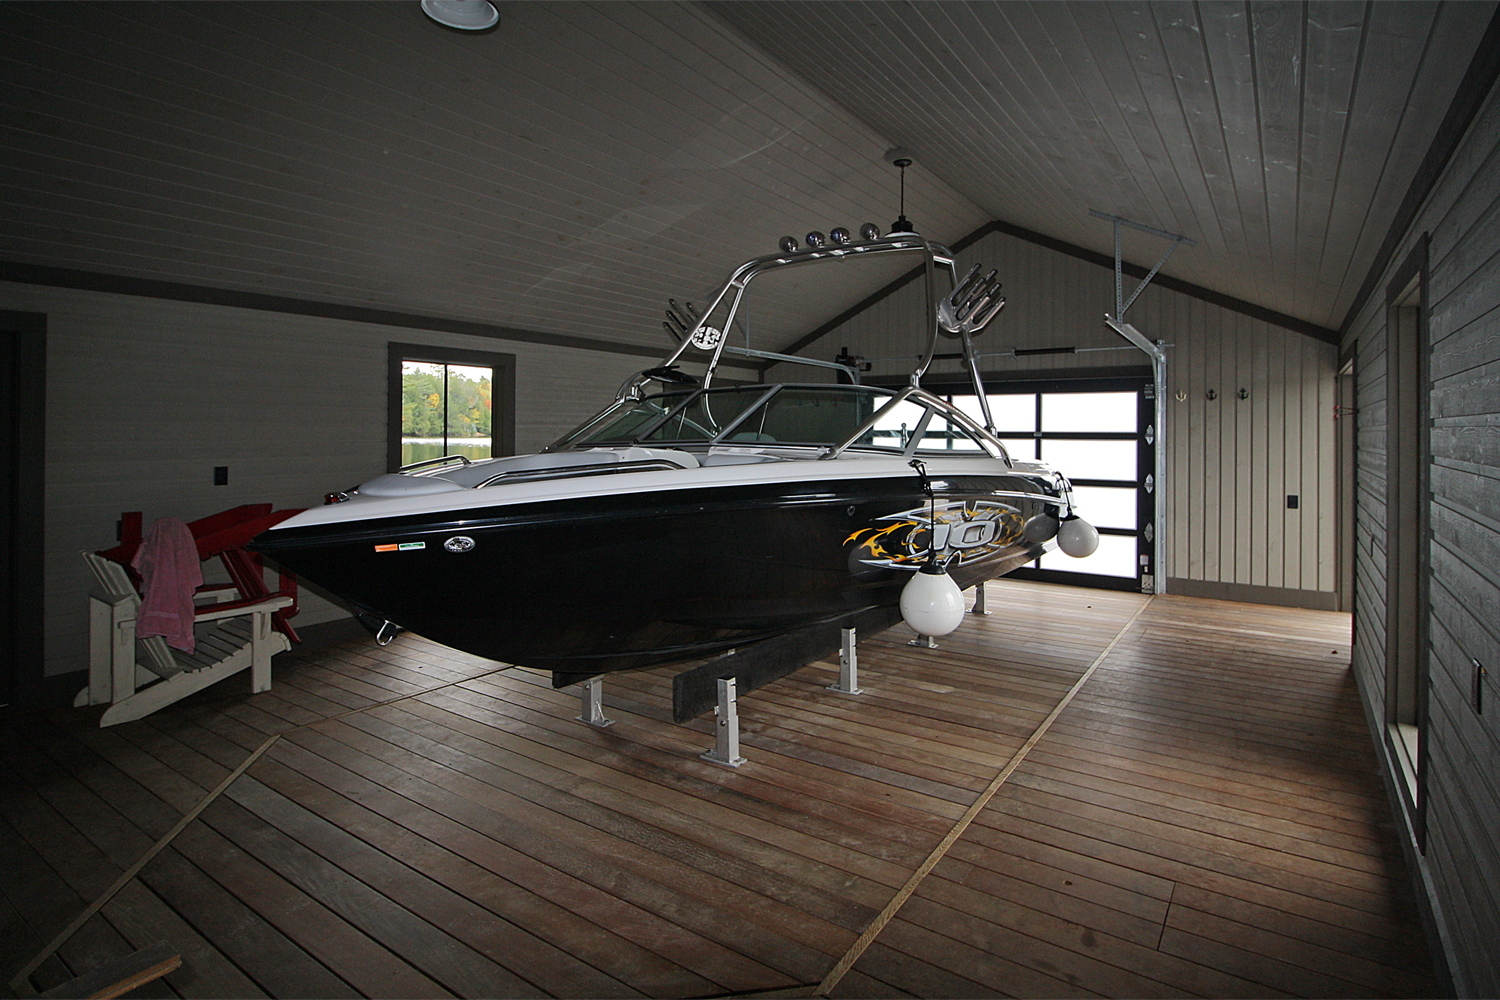 Hidden Beam Wet Slip Lift with decked platform-boathouse by Greenway Construction